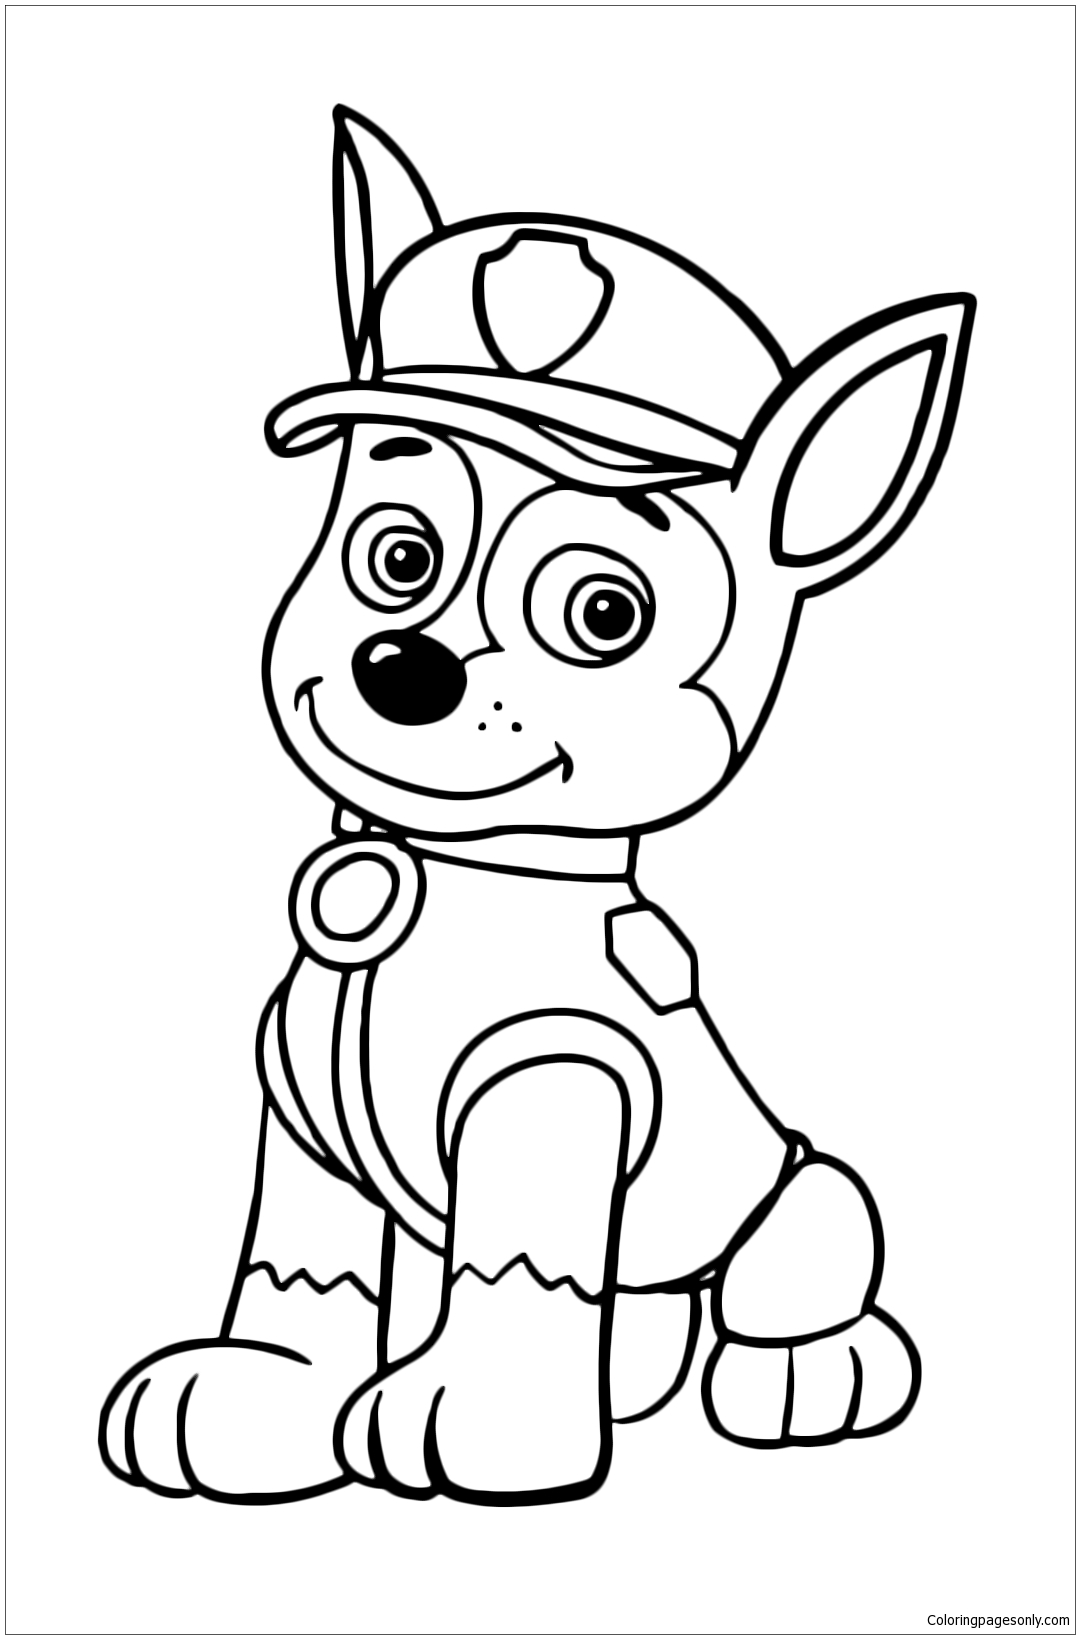 Chase The Police Dog Is Resting Sitting Coloring Page